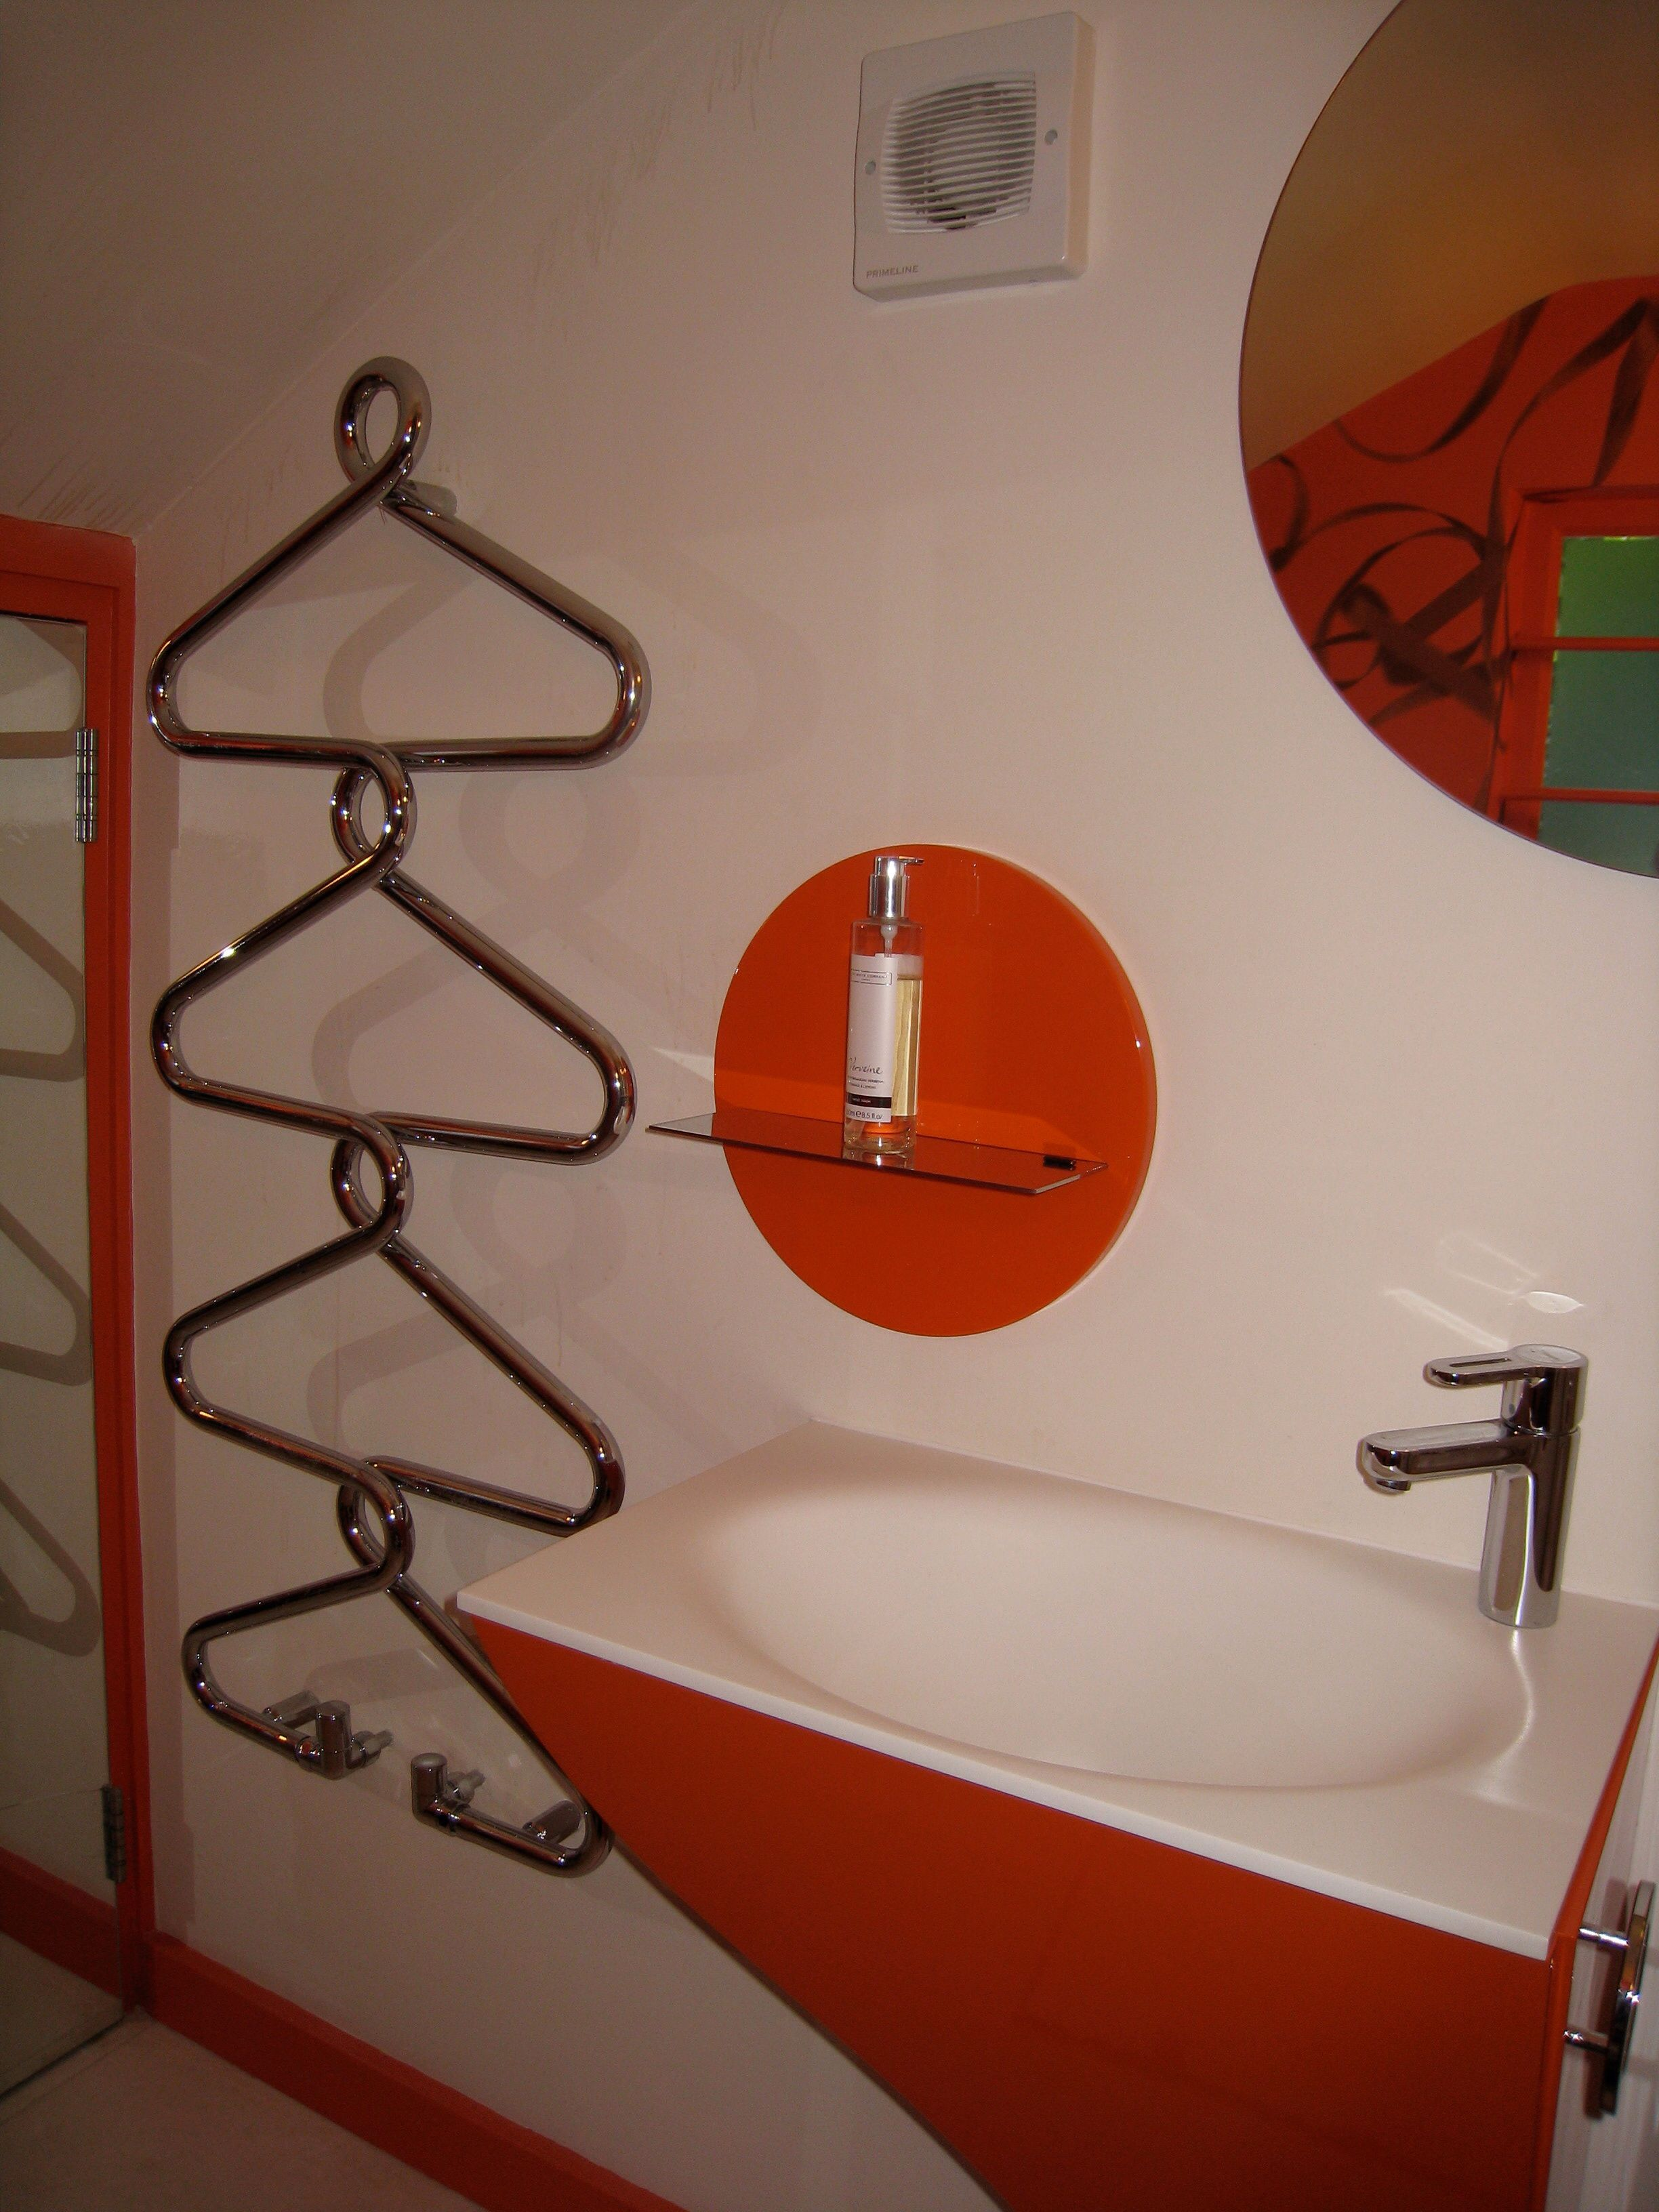 Utility & Downstairs Cloakroom, view 2